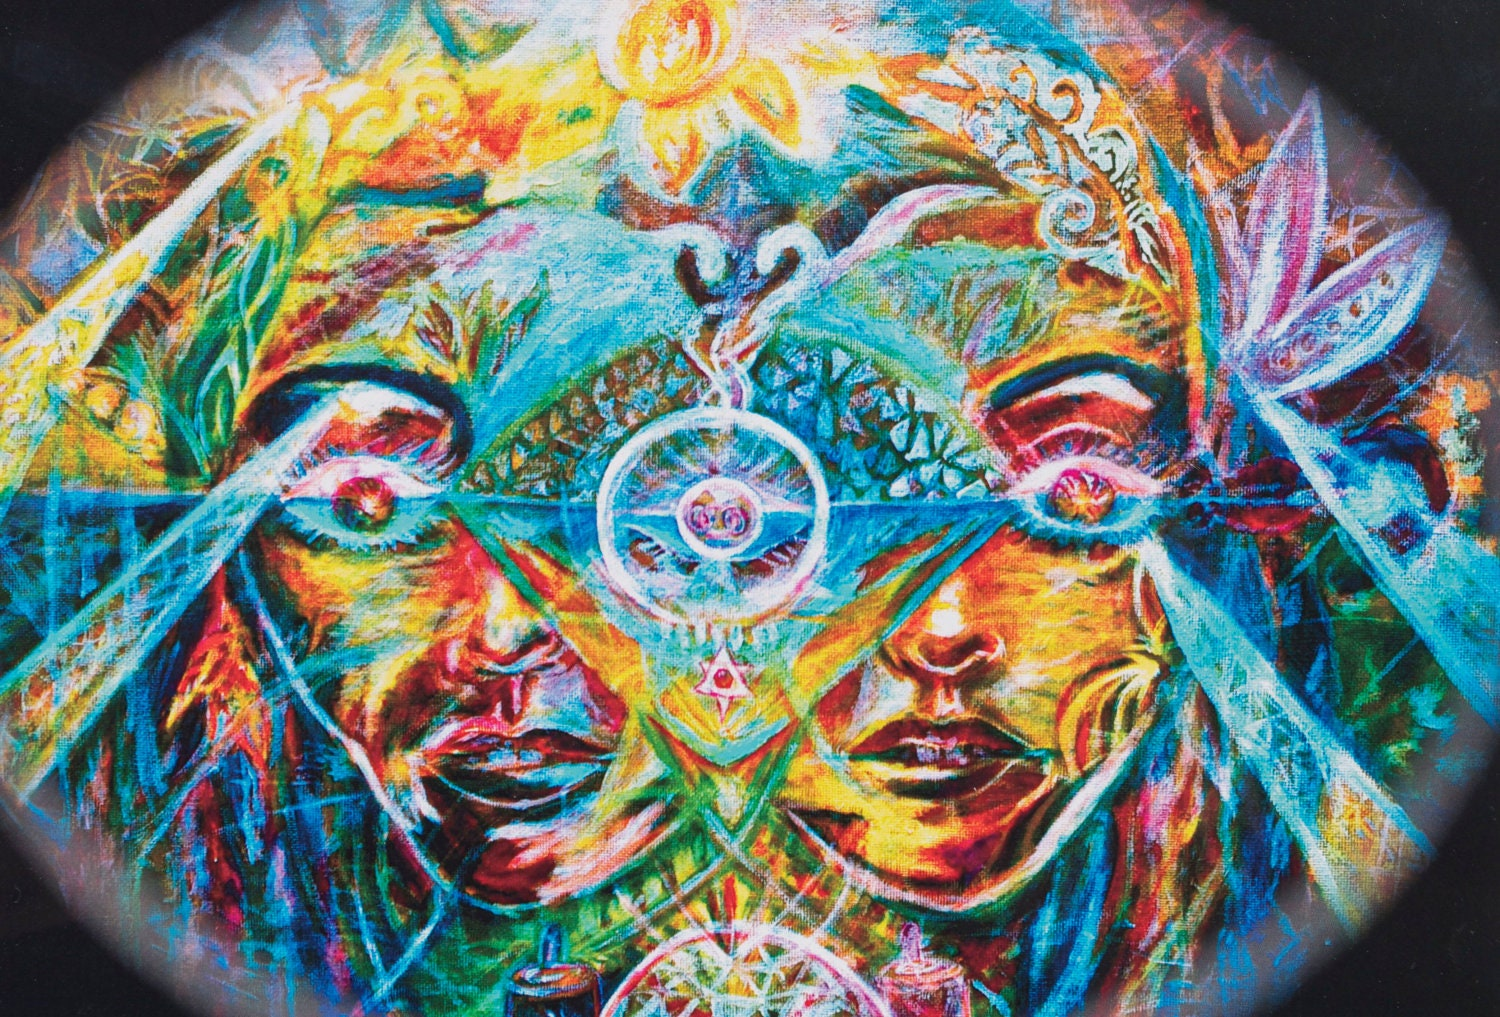 Psychedelic Abstract Work Hippie Artwork For The Soul